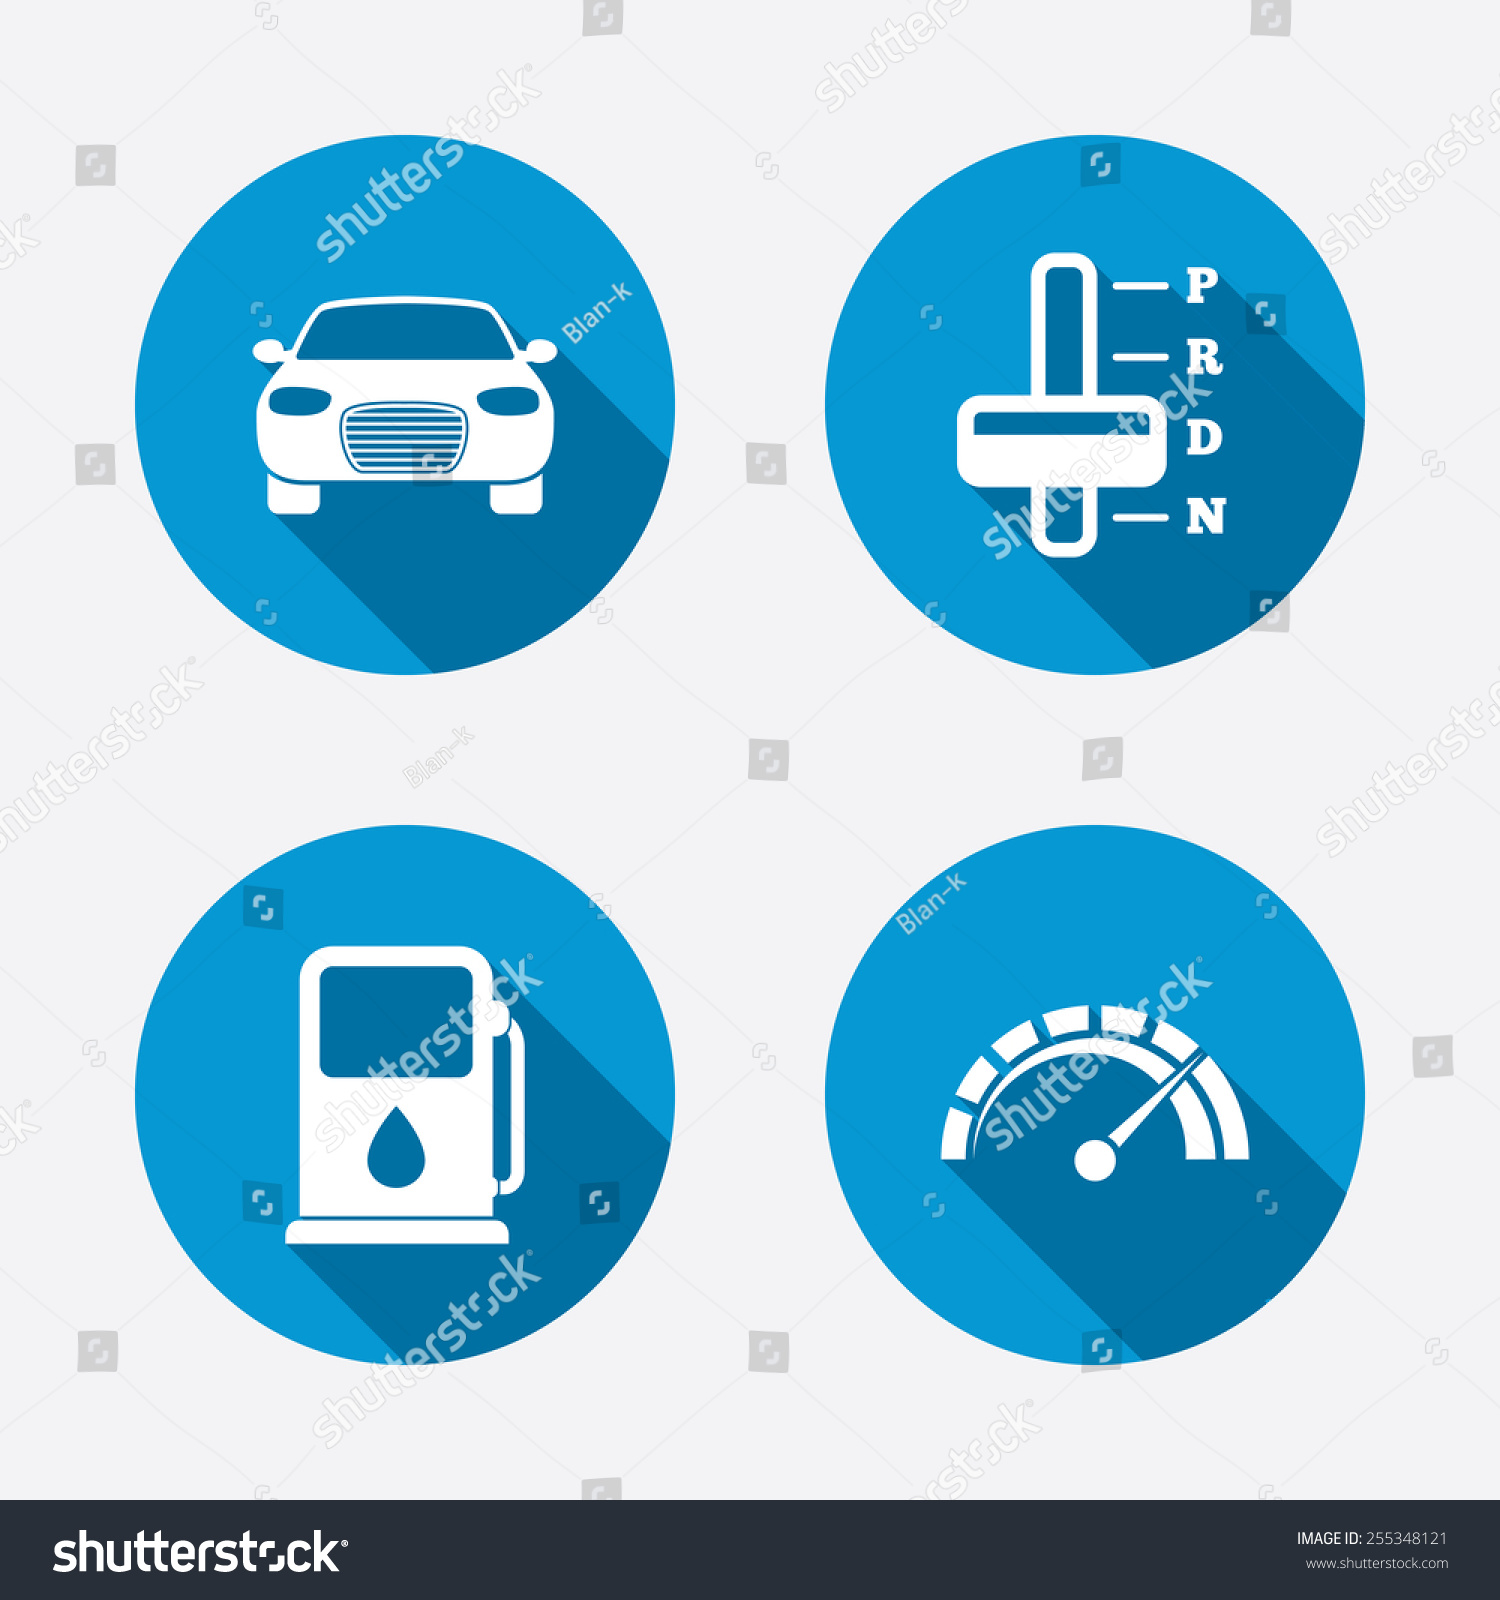 Automatic Transmission Symbols Images